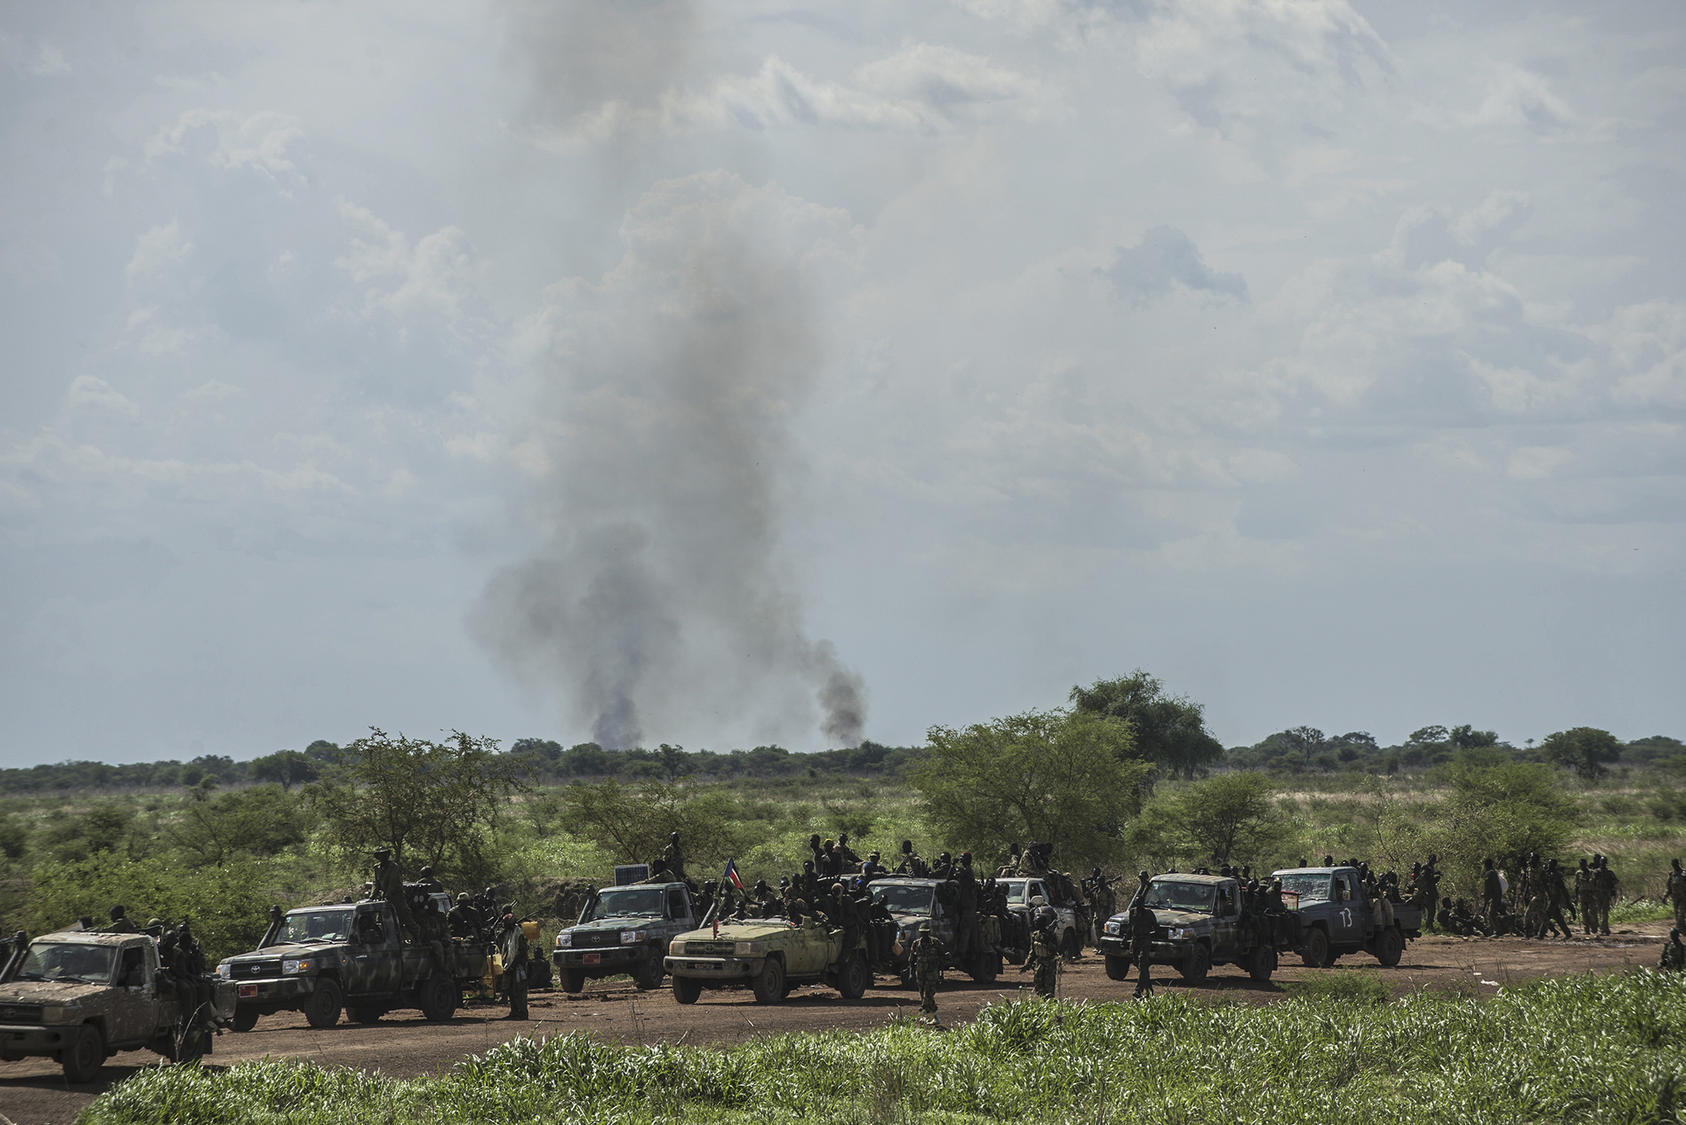 Government soldiers of the Sudanese Peoples Liberation Army advance on the town of Bentiu in South Sudan, May 4, 2014. Government forces went on the offensive to take back the oil hub of Bentiu from rebels loyal to Riek Machar. (Lynsey Addario/The New York Times)